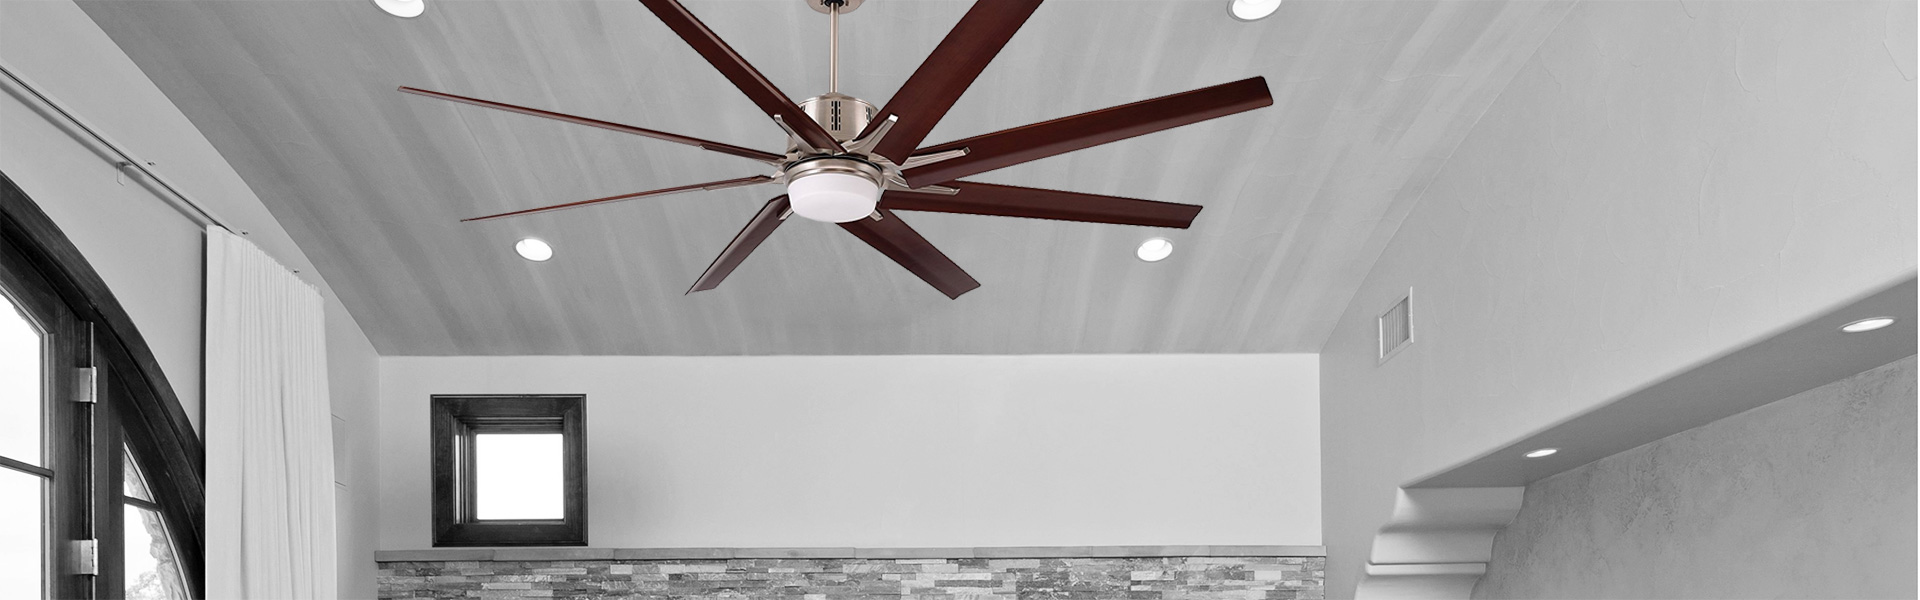 Ceiling fans at Marx Fireplaces & Lighting